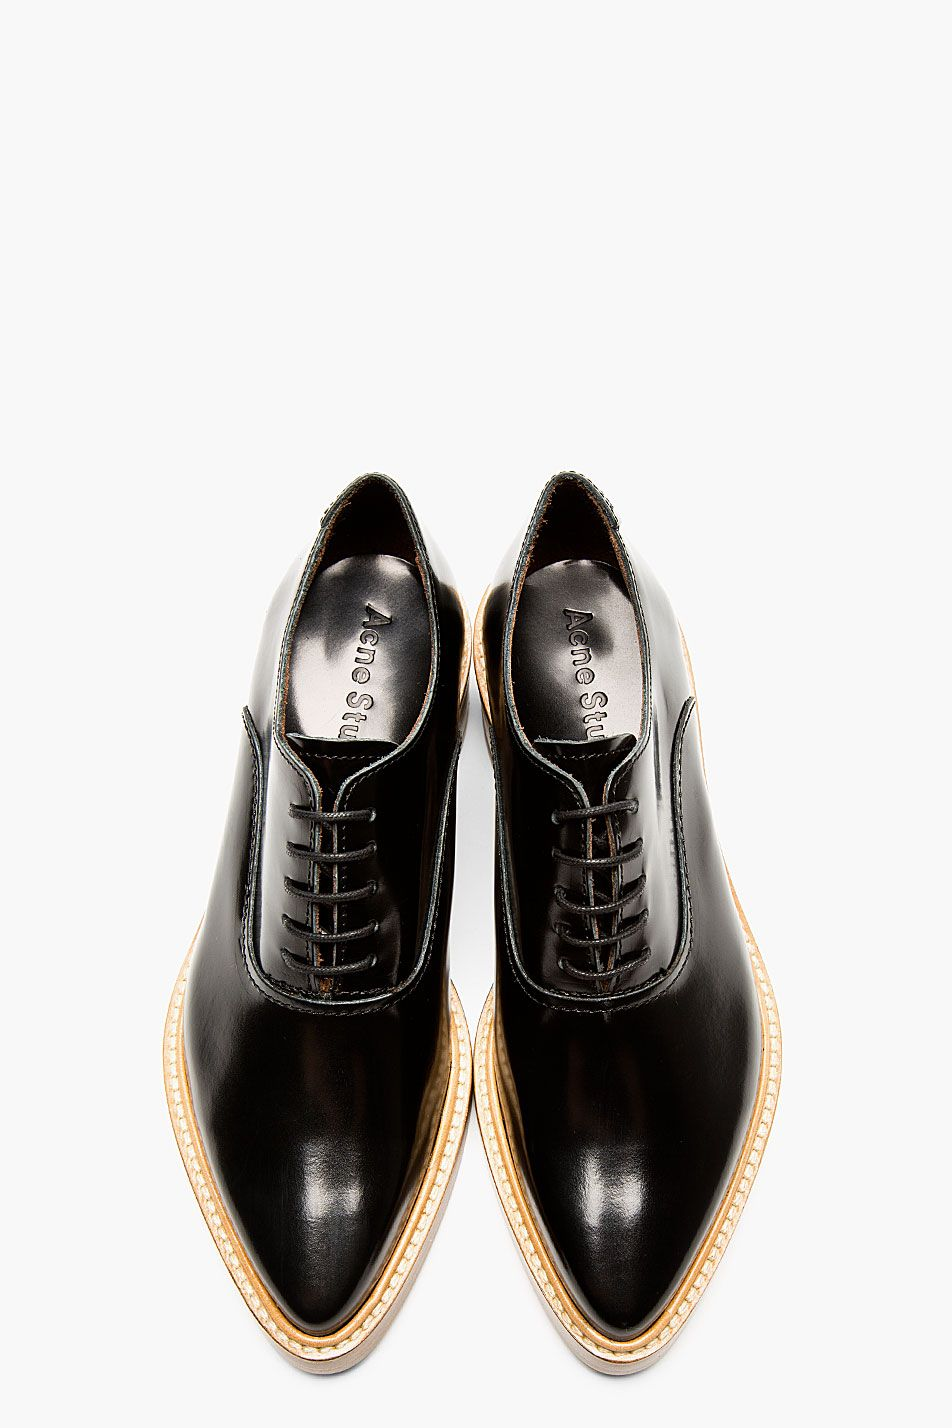 f94b7d9ef924 ACNE STUDIOS Black Leather Carla Oxfords Chaussure Chic, Styliste,  Escarpins, Soulier, Bottines